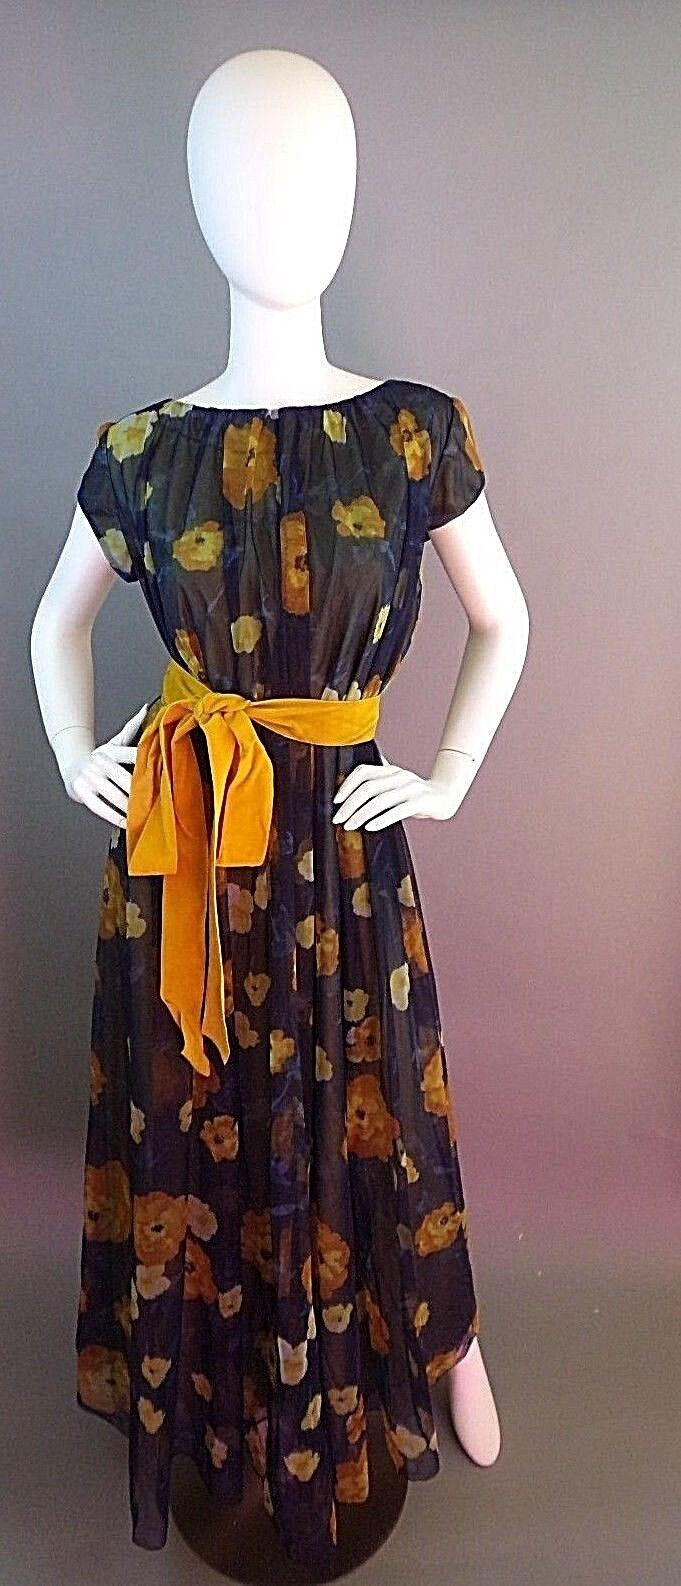 VINTAGE LUCIE ANN BEVERLY HILLS 1950s NIGHTGOWN - image 3